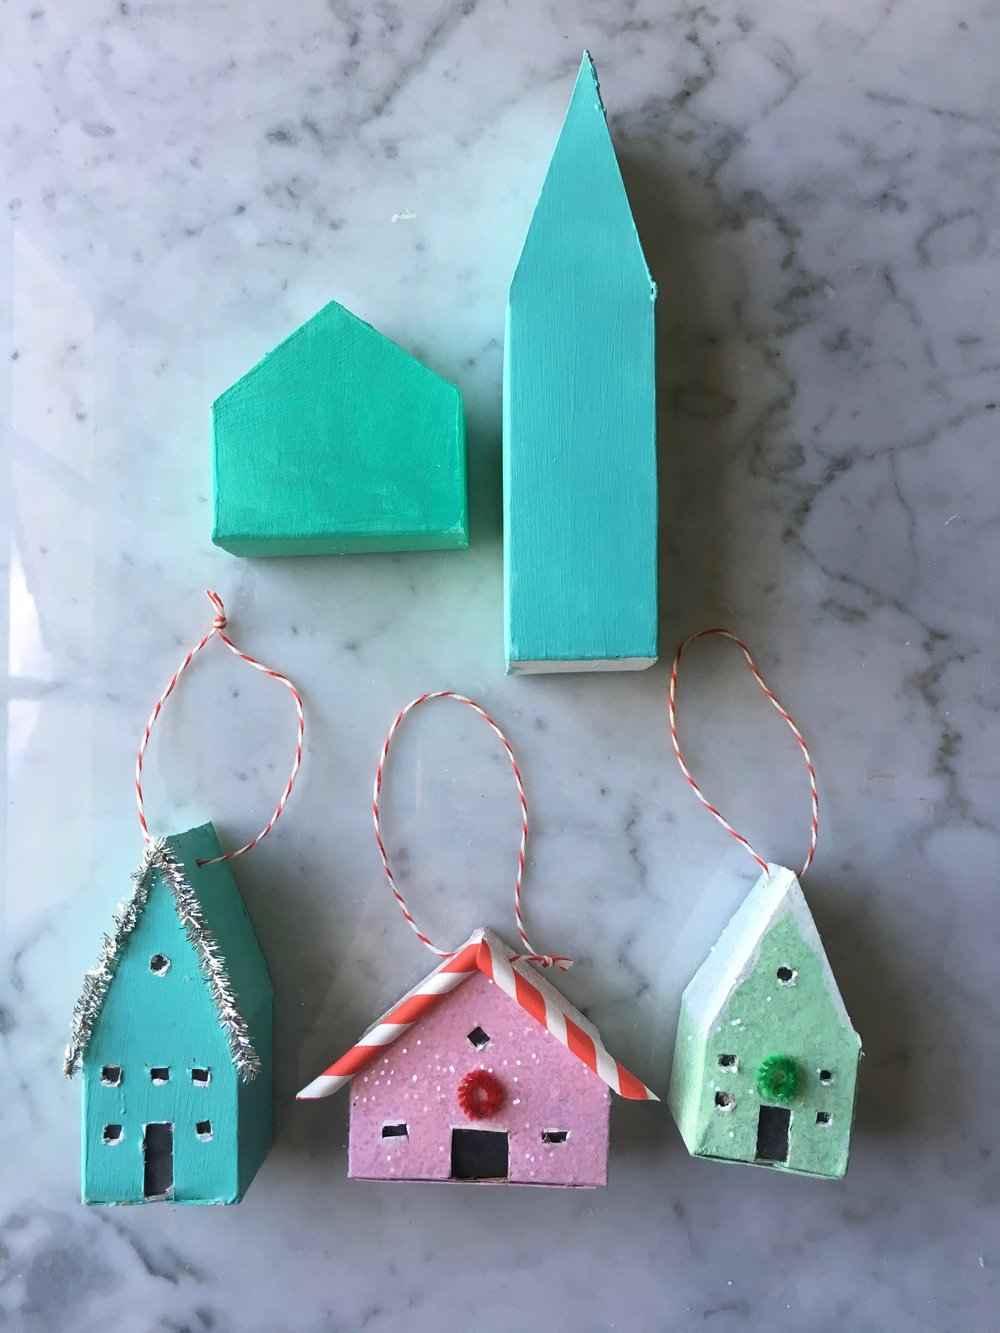 SuperMakeIt-House-Ornament-How-To